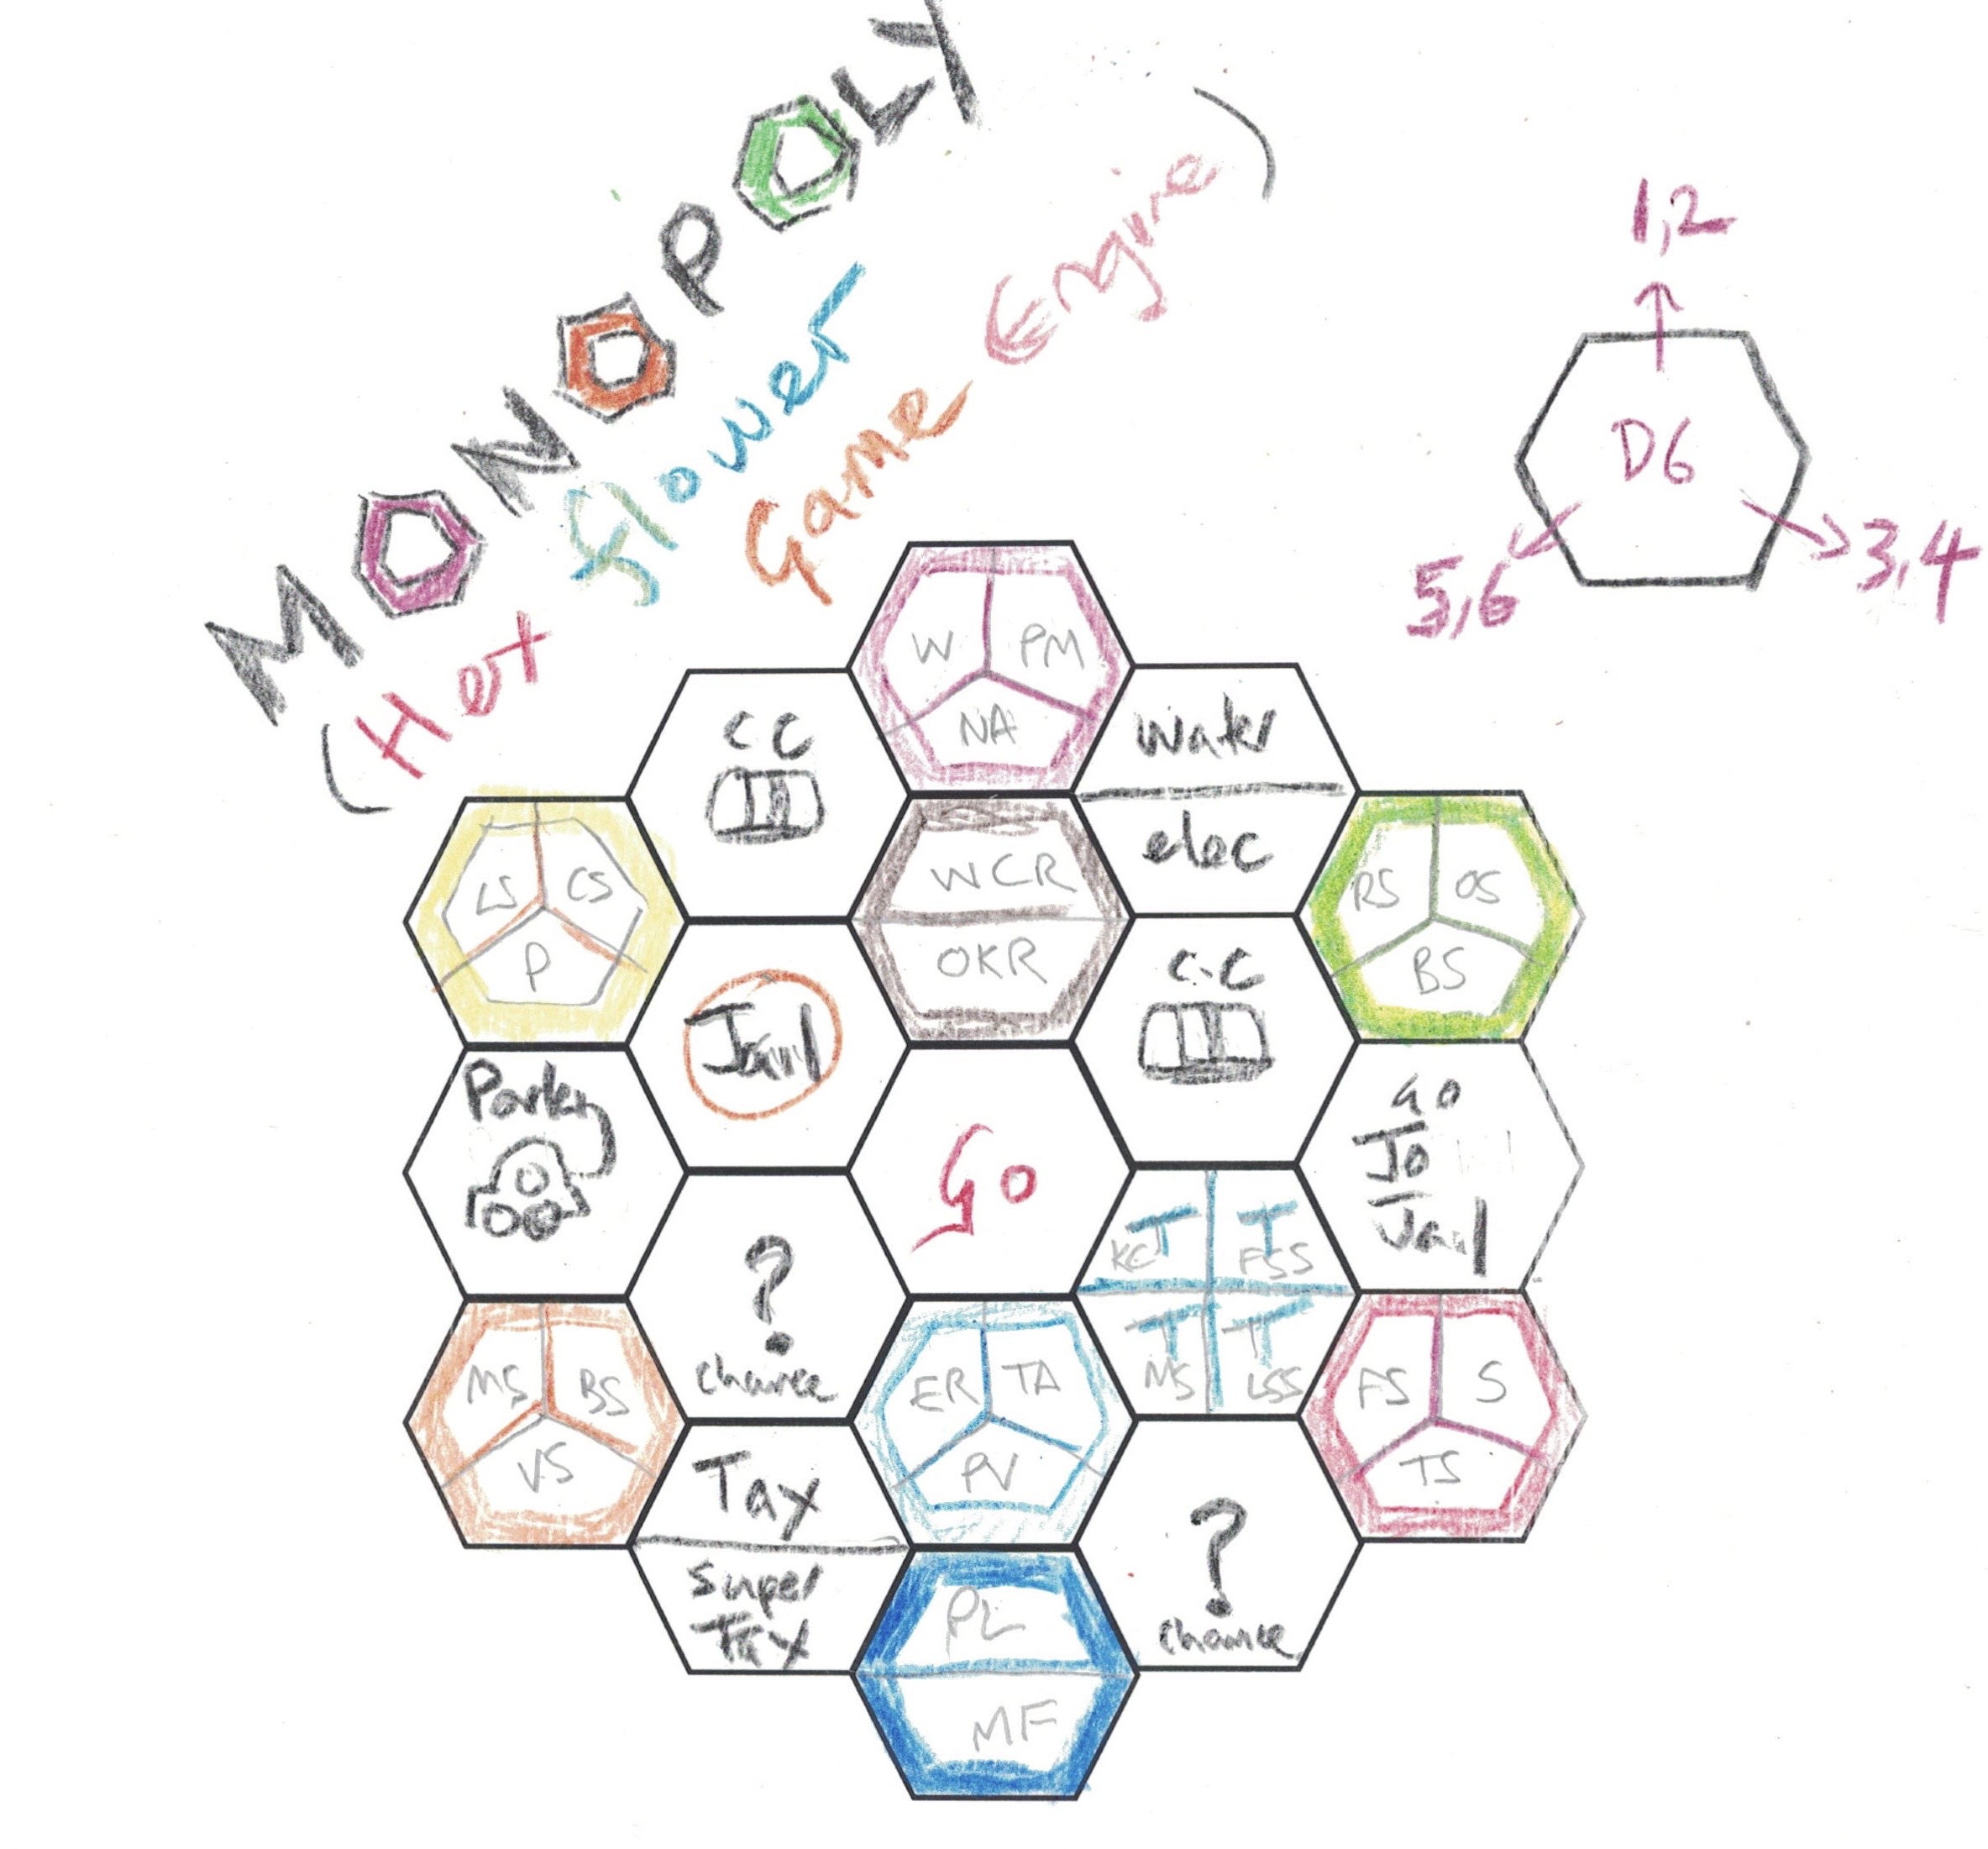 Monopoly Hex Flower Game Engine Concept